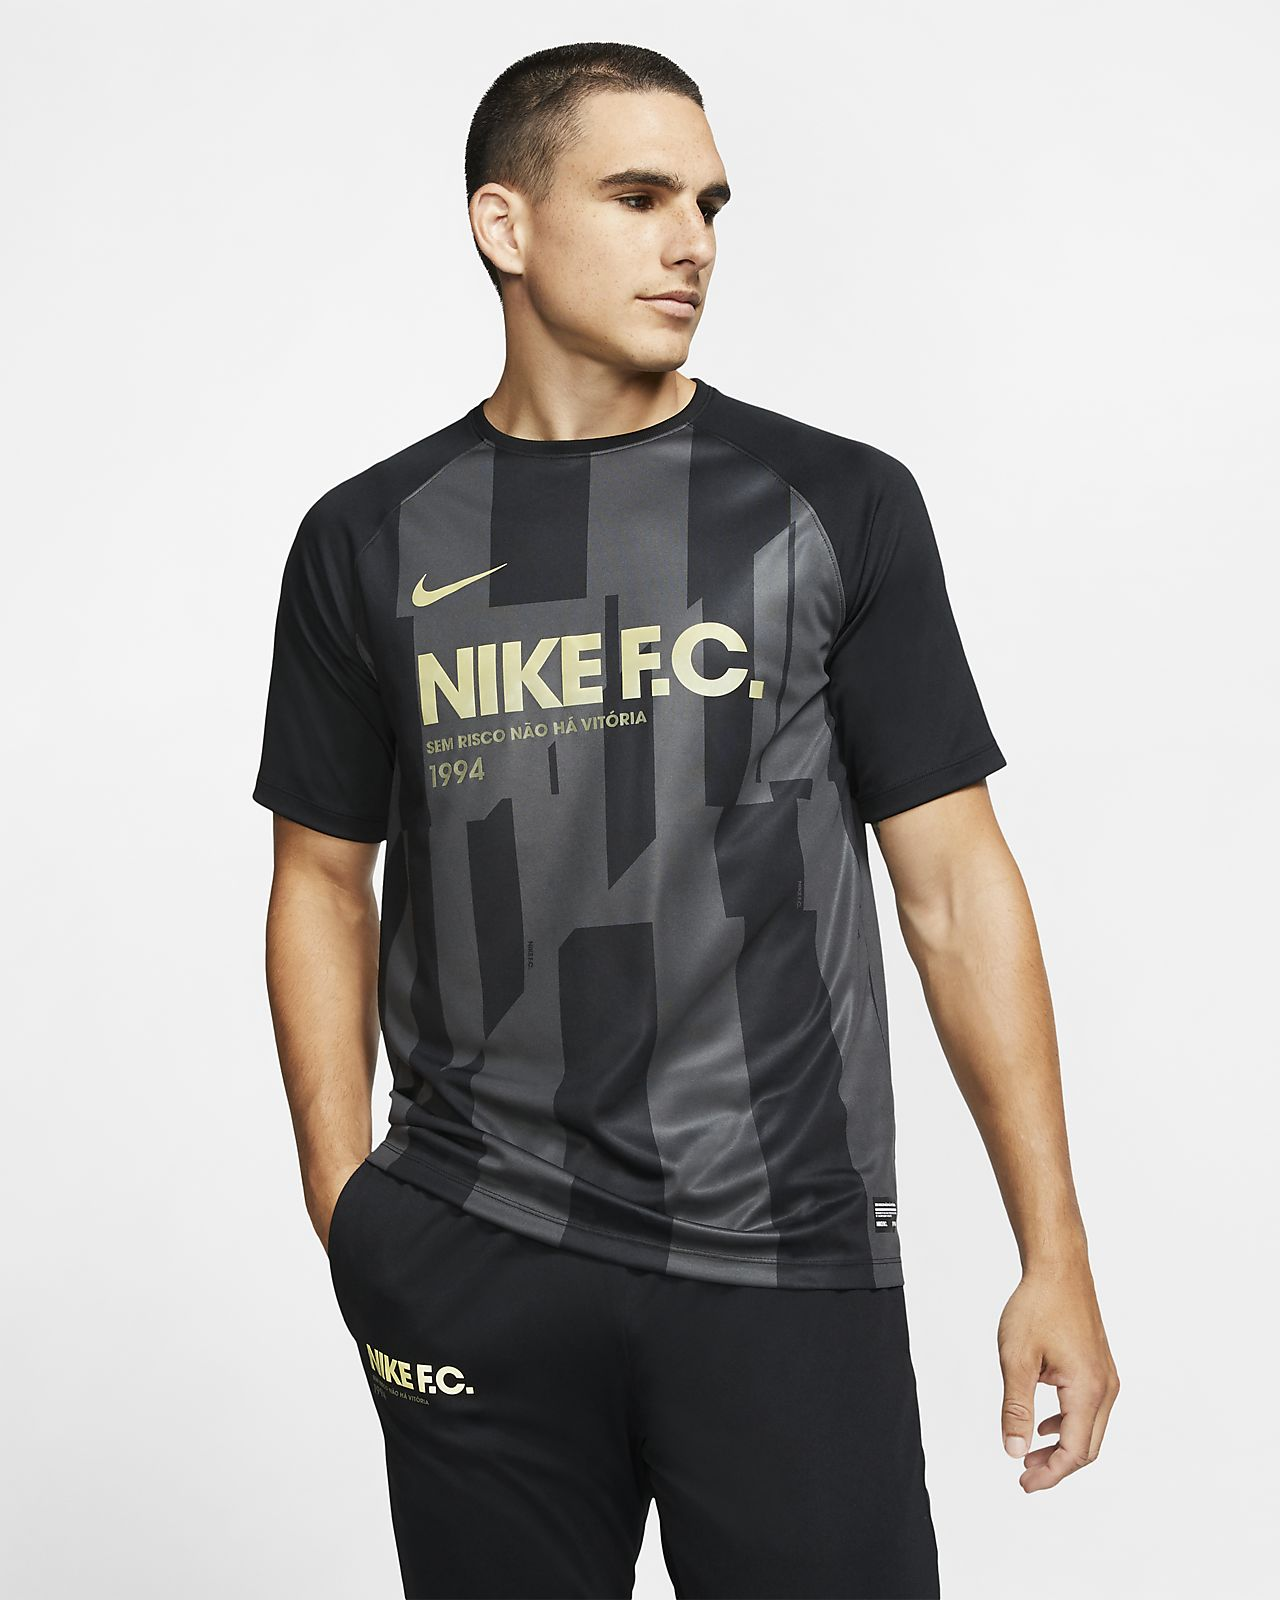 Nike F.C. Men's Short-Sleeve Shirt